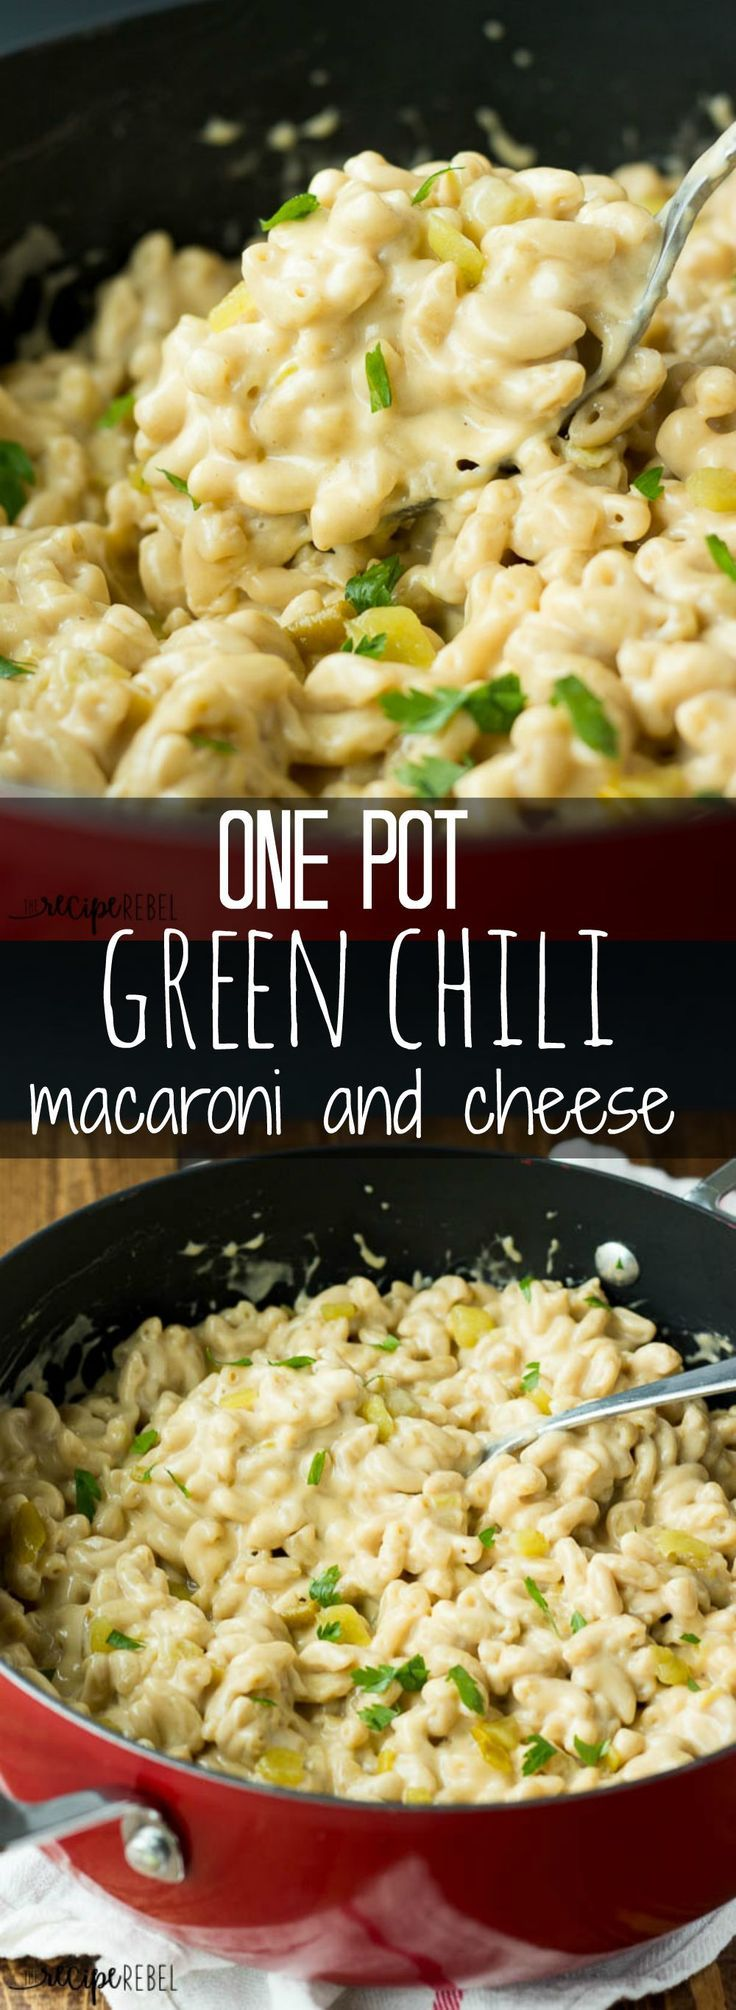 Easy One Pot Green Chile Macaroni and Cheese - A super creamy macaroni and cheese with a bit of kick from green chiles! Only 6 ingredients, one pot and 20 minutes!